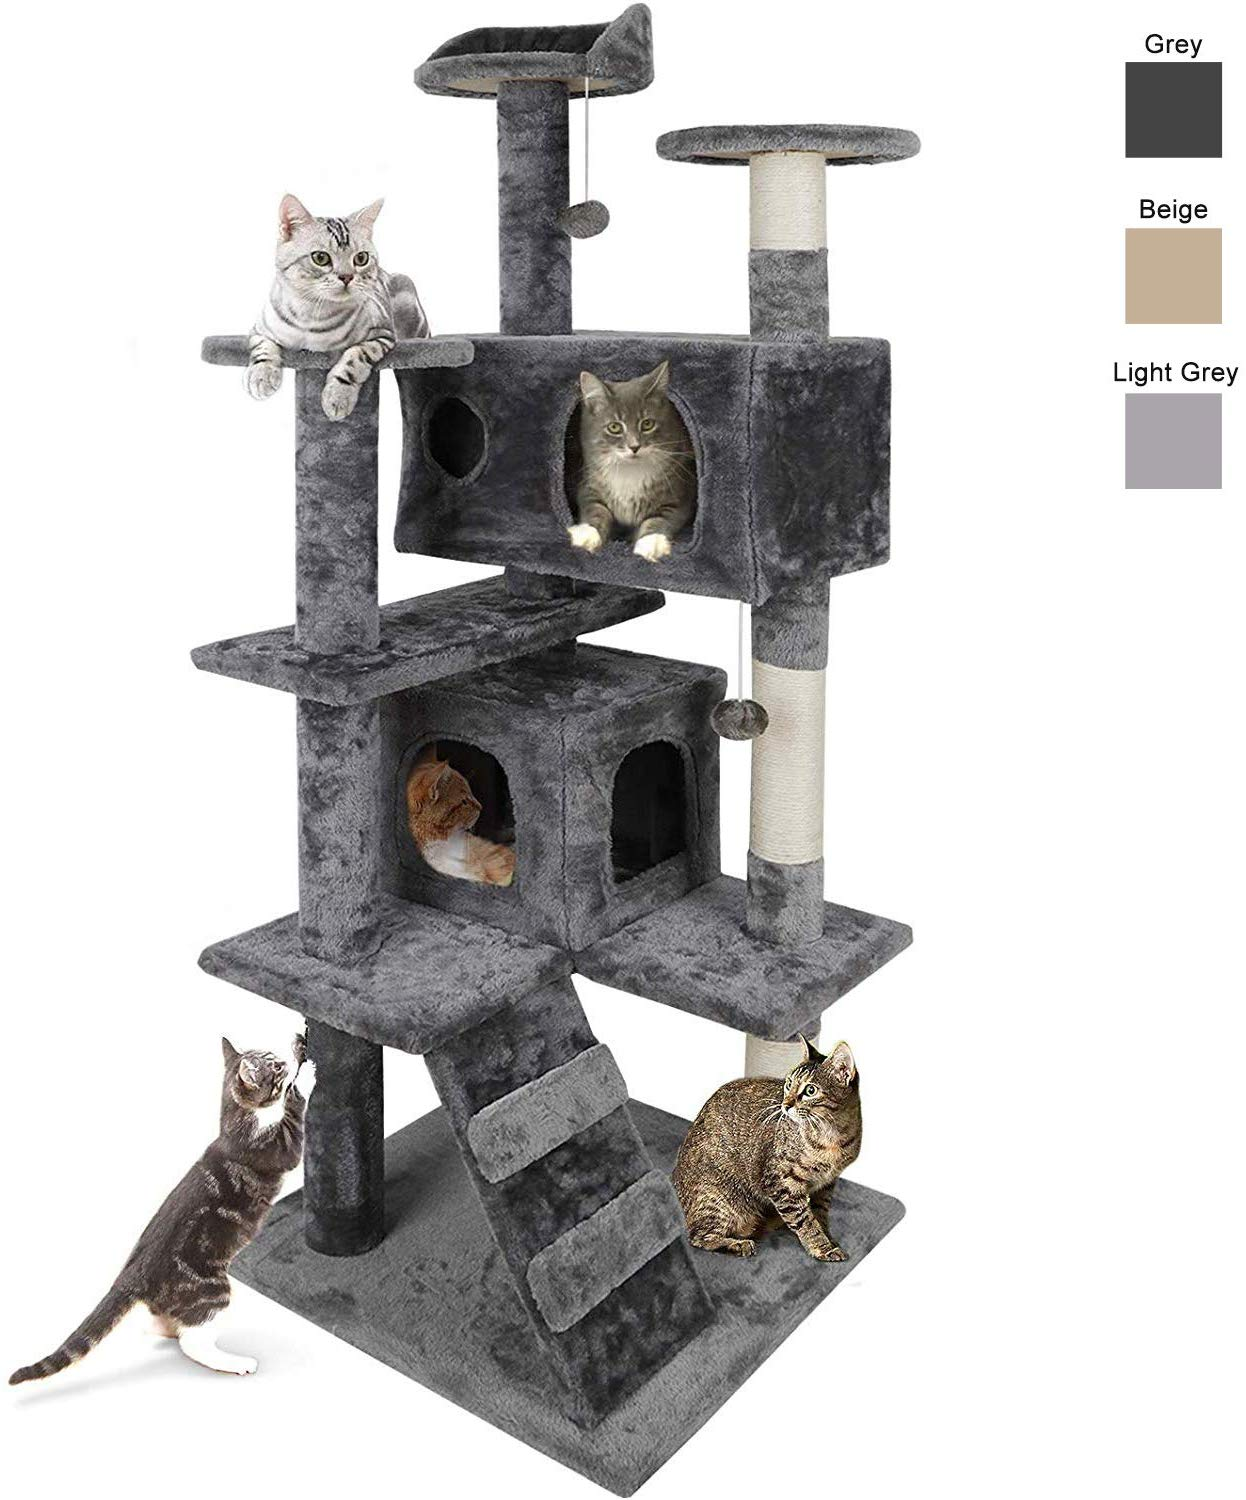 Nova Microdermabrasion Multi-level 53 Inches Cat Tree House